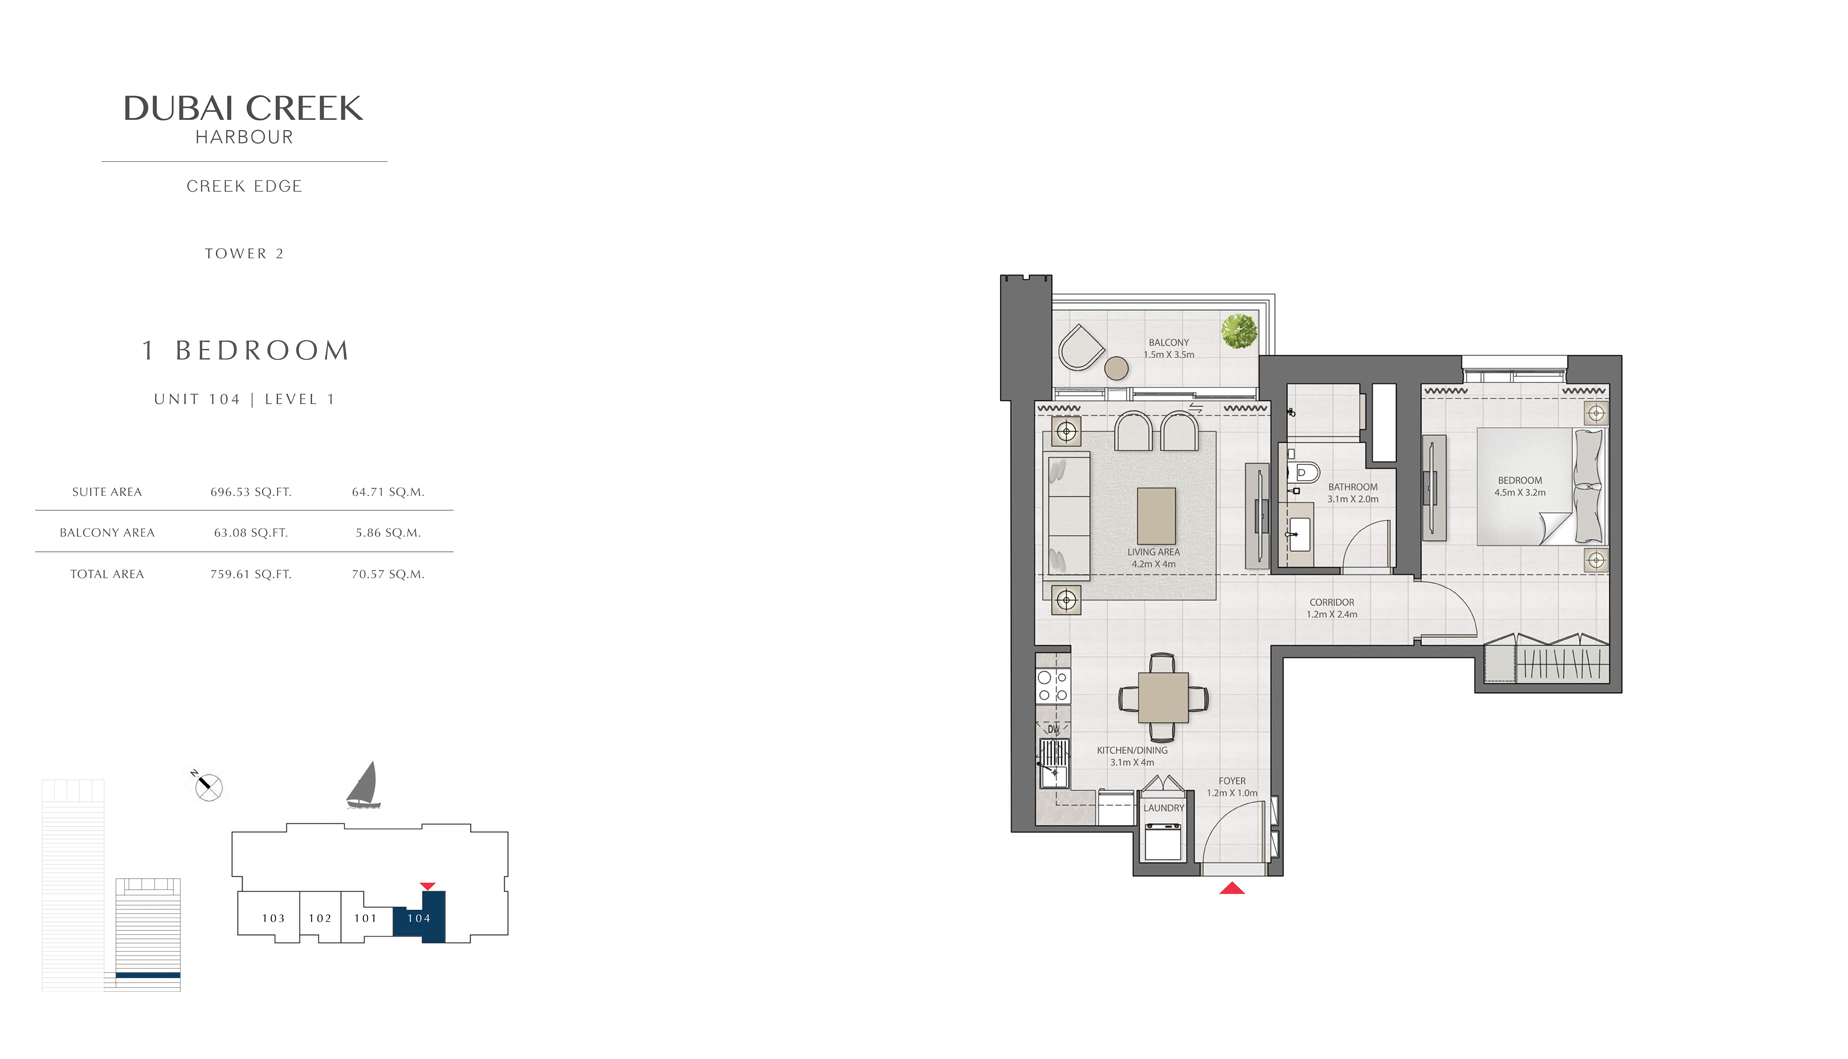 1 Bedroom Tower 2 Unit 104 Level 1 Size 759 sq.ft